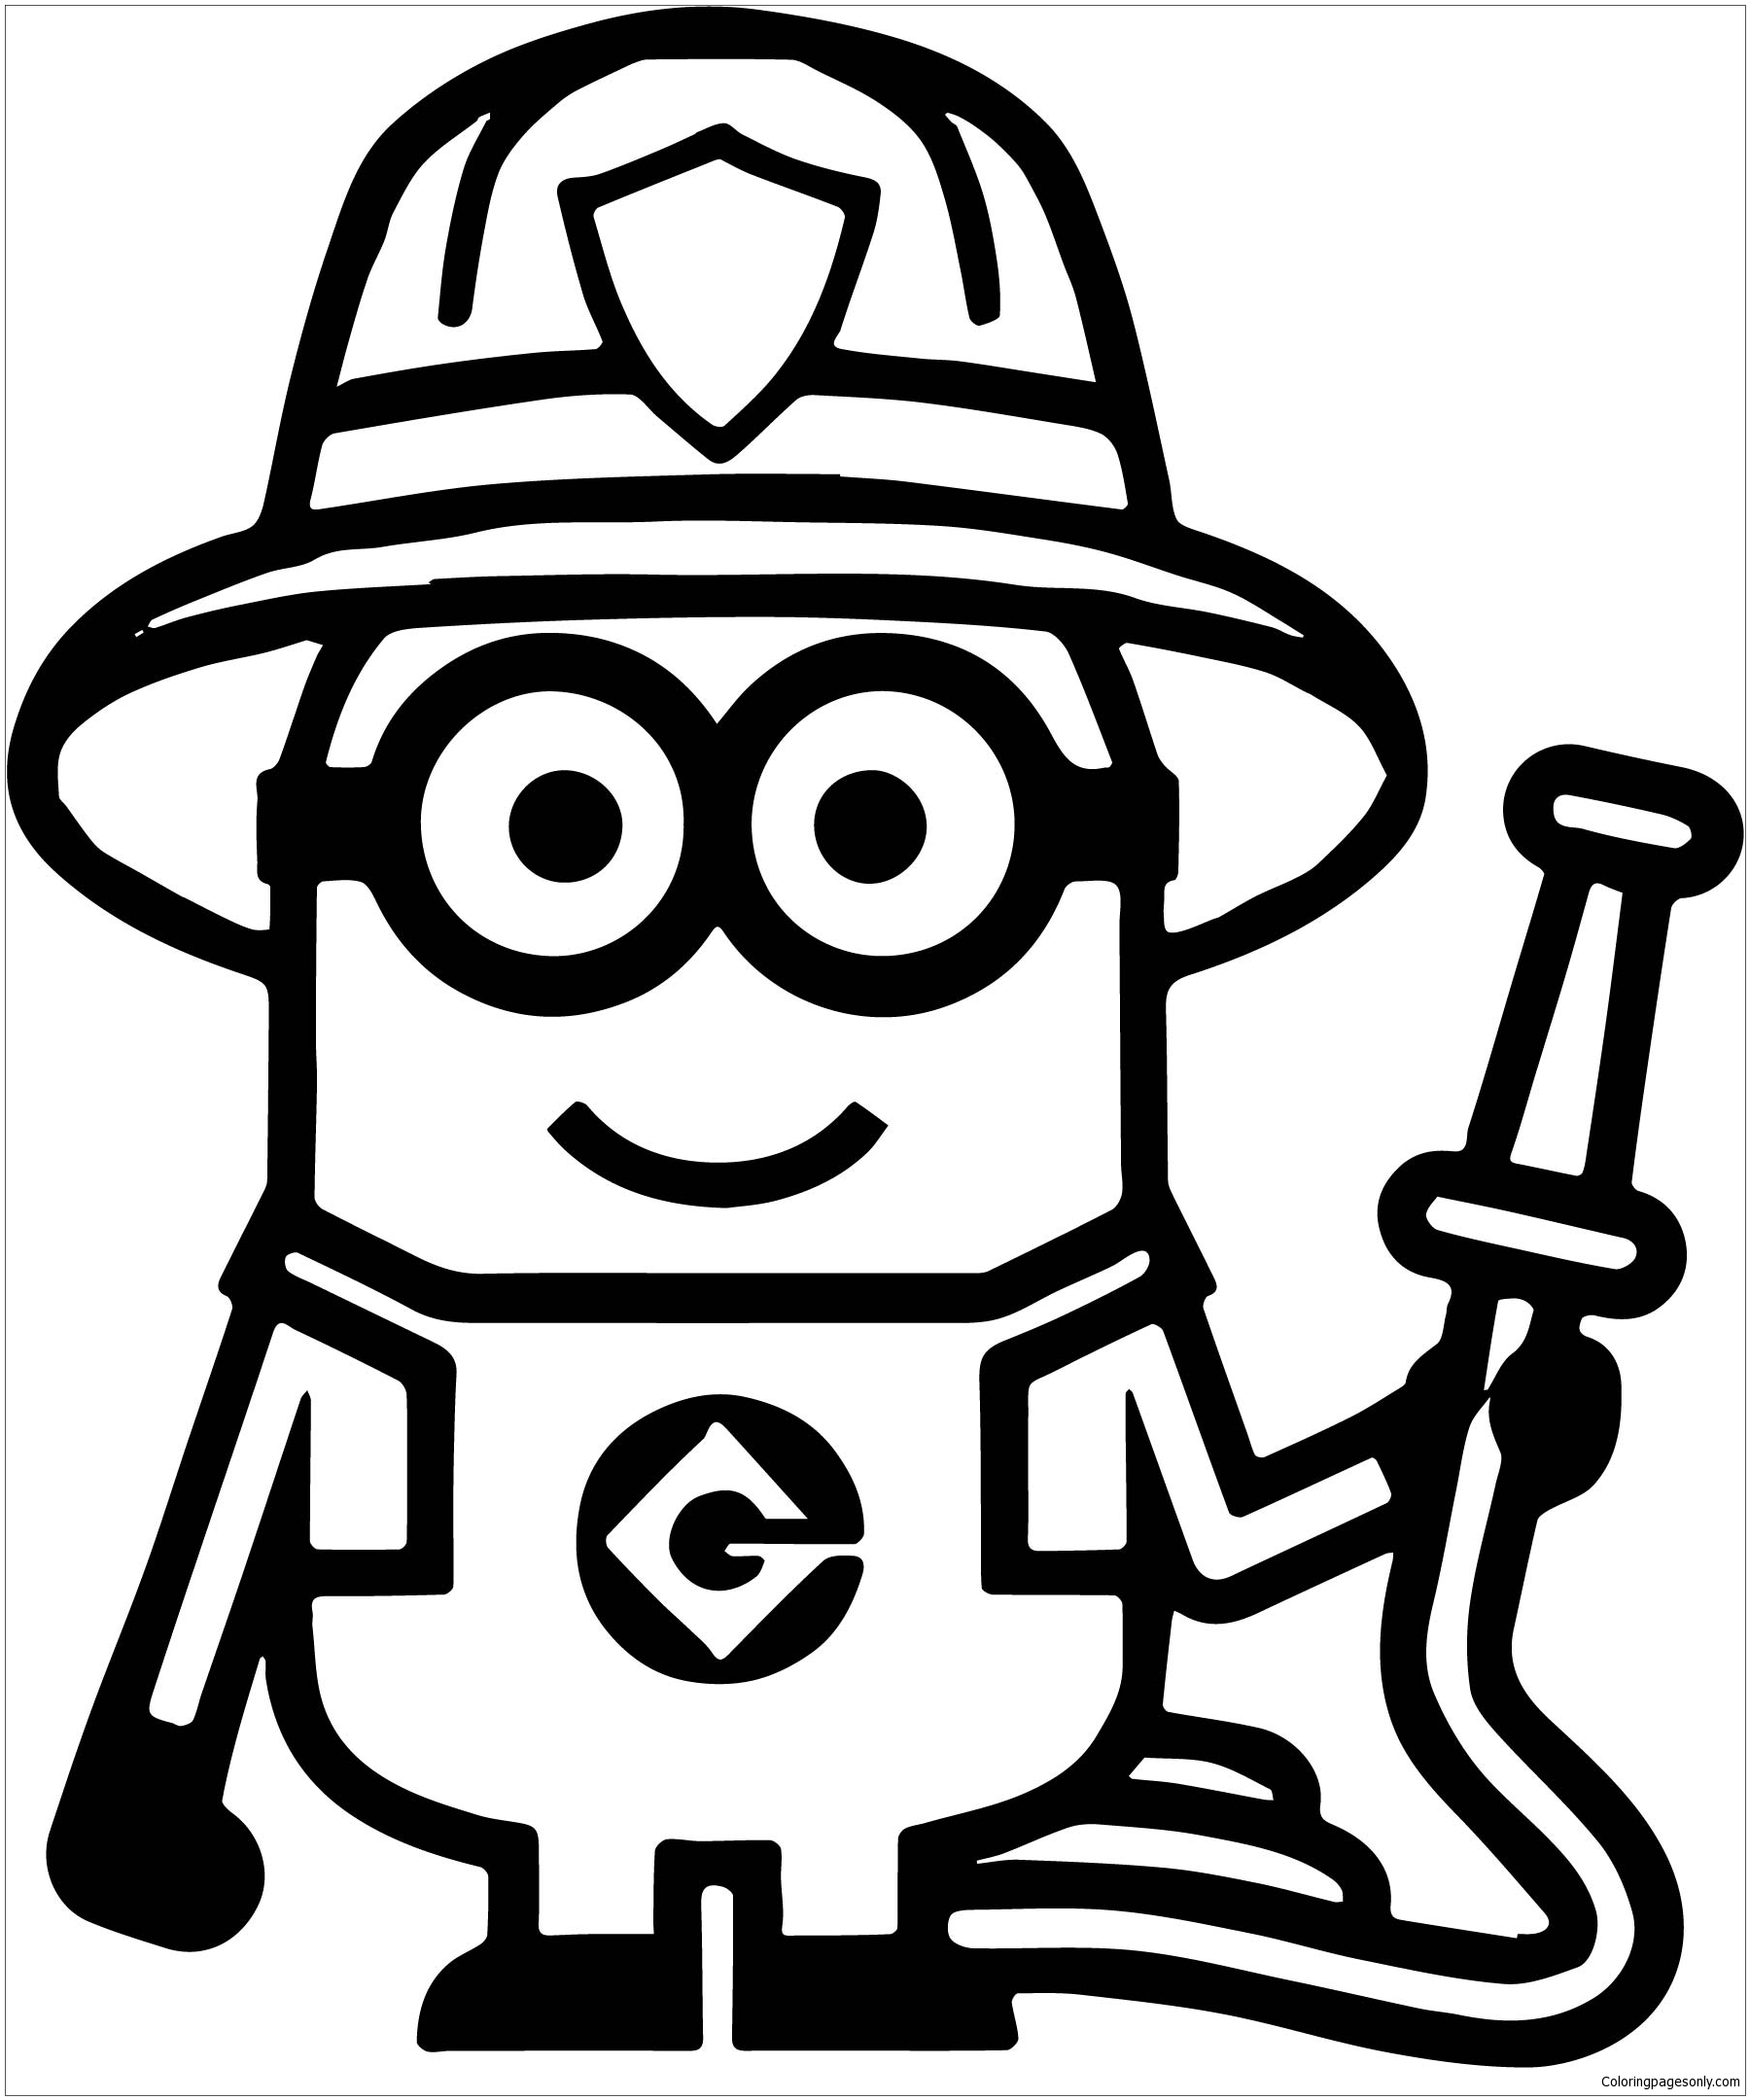 minion coloring pictures minion coloring pages best coloring pages for kids minion coloring pictures 1 1